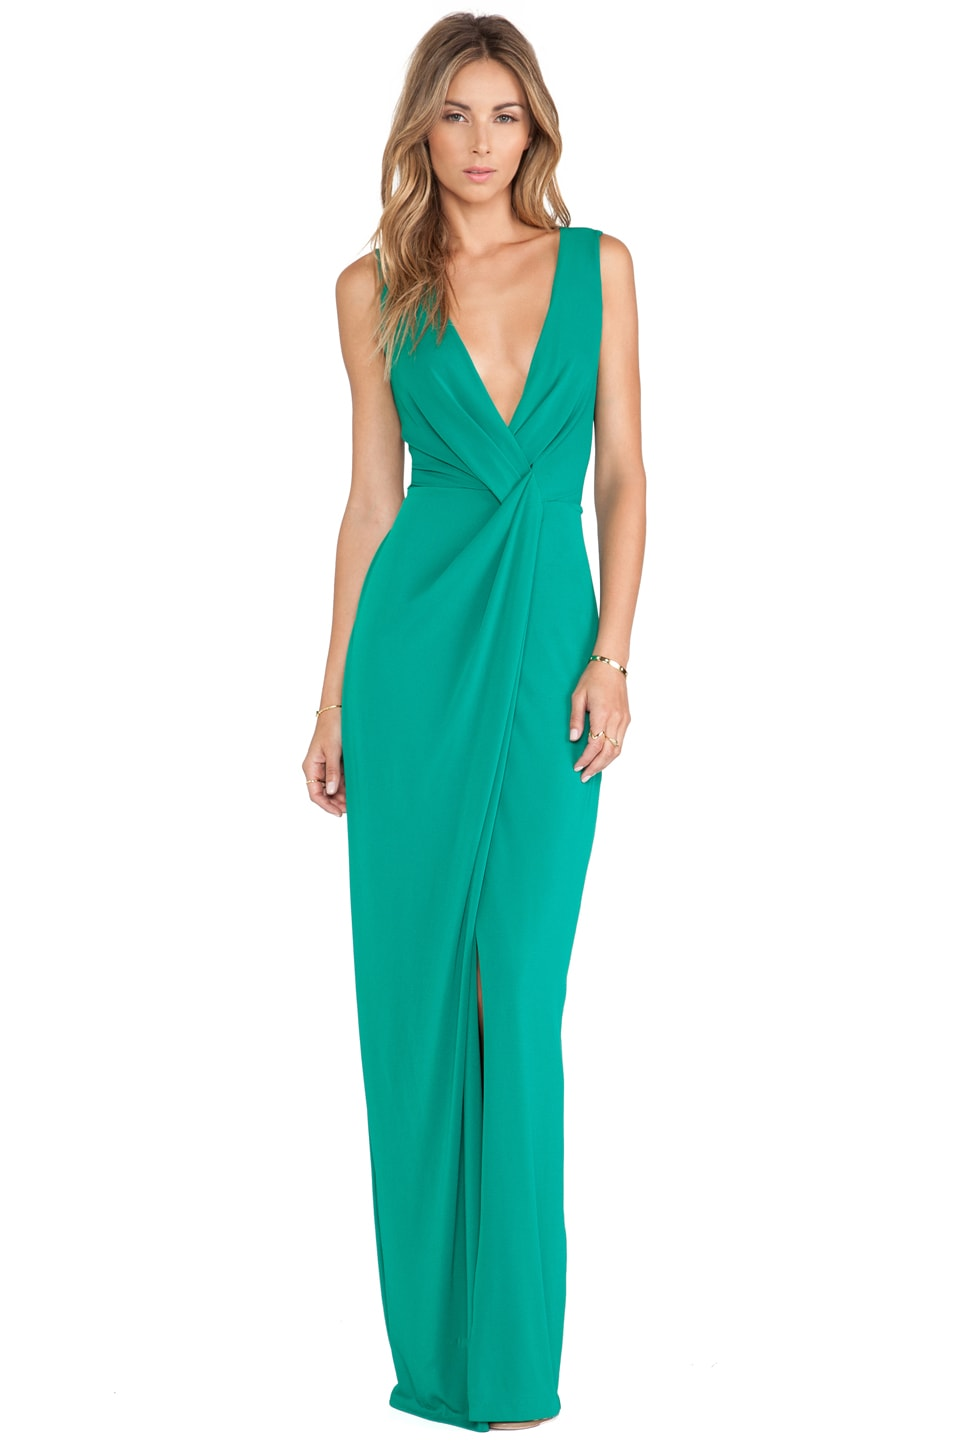 Halston Heritage Drape Front Gown in Emerald